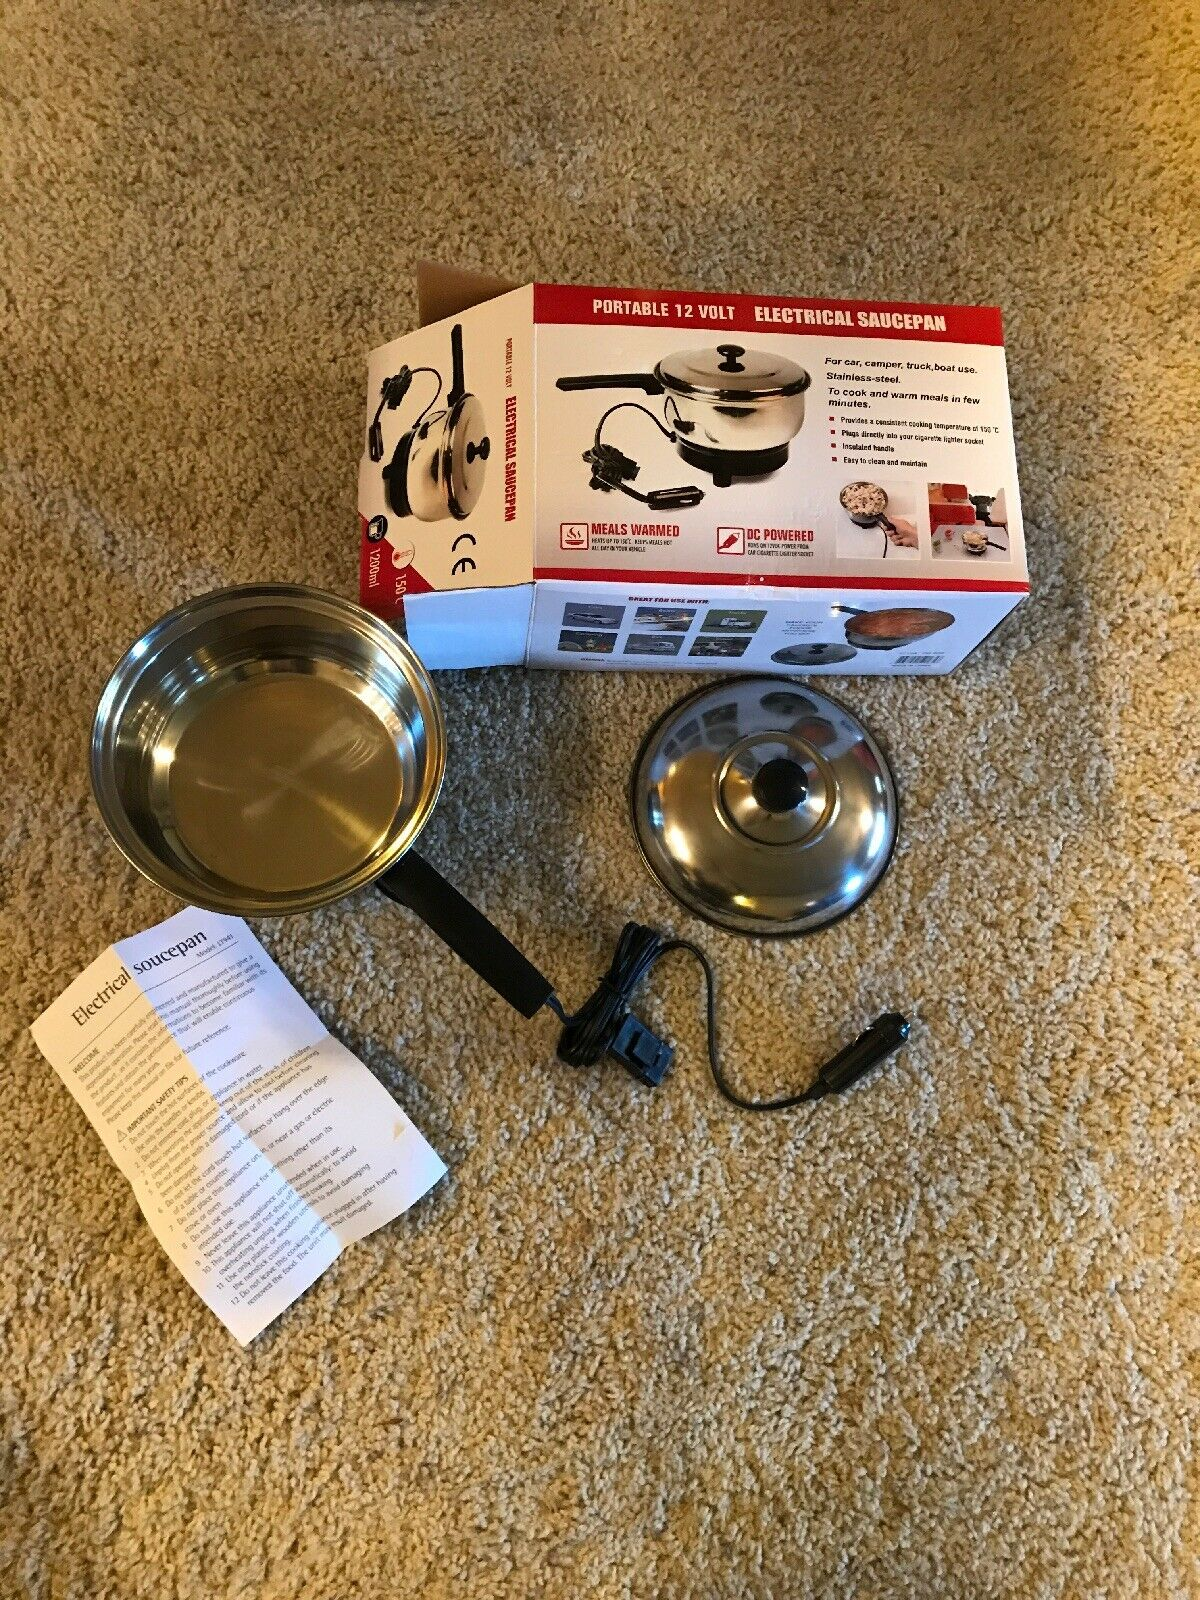 Portable 12 Volt Electric Saucepan Will Pug Into Car  Great For Camping